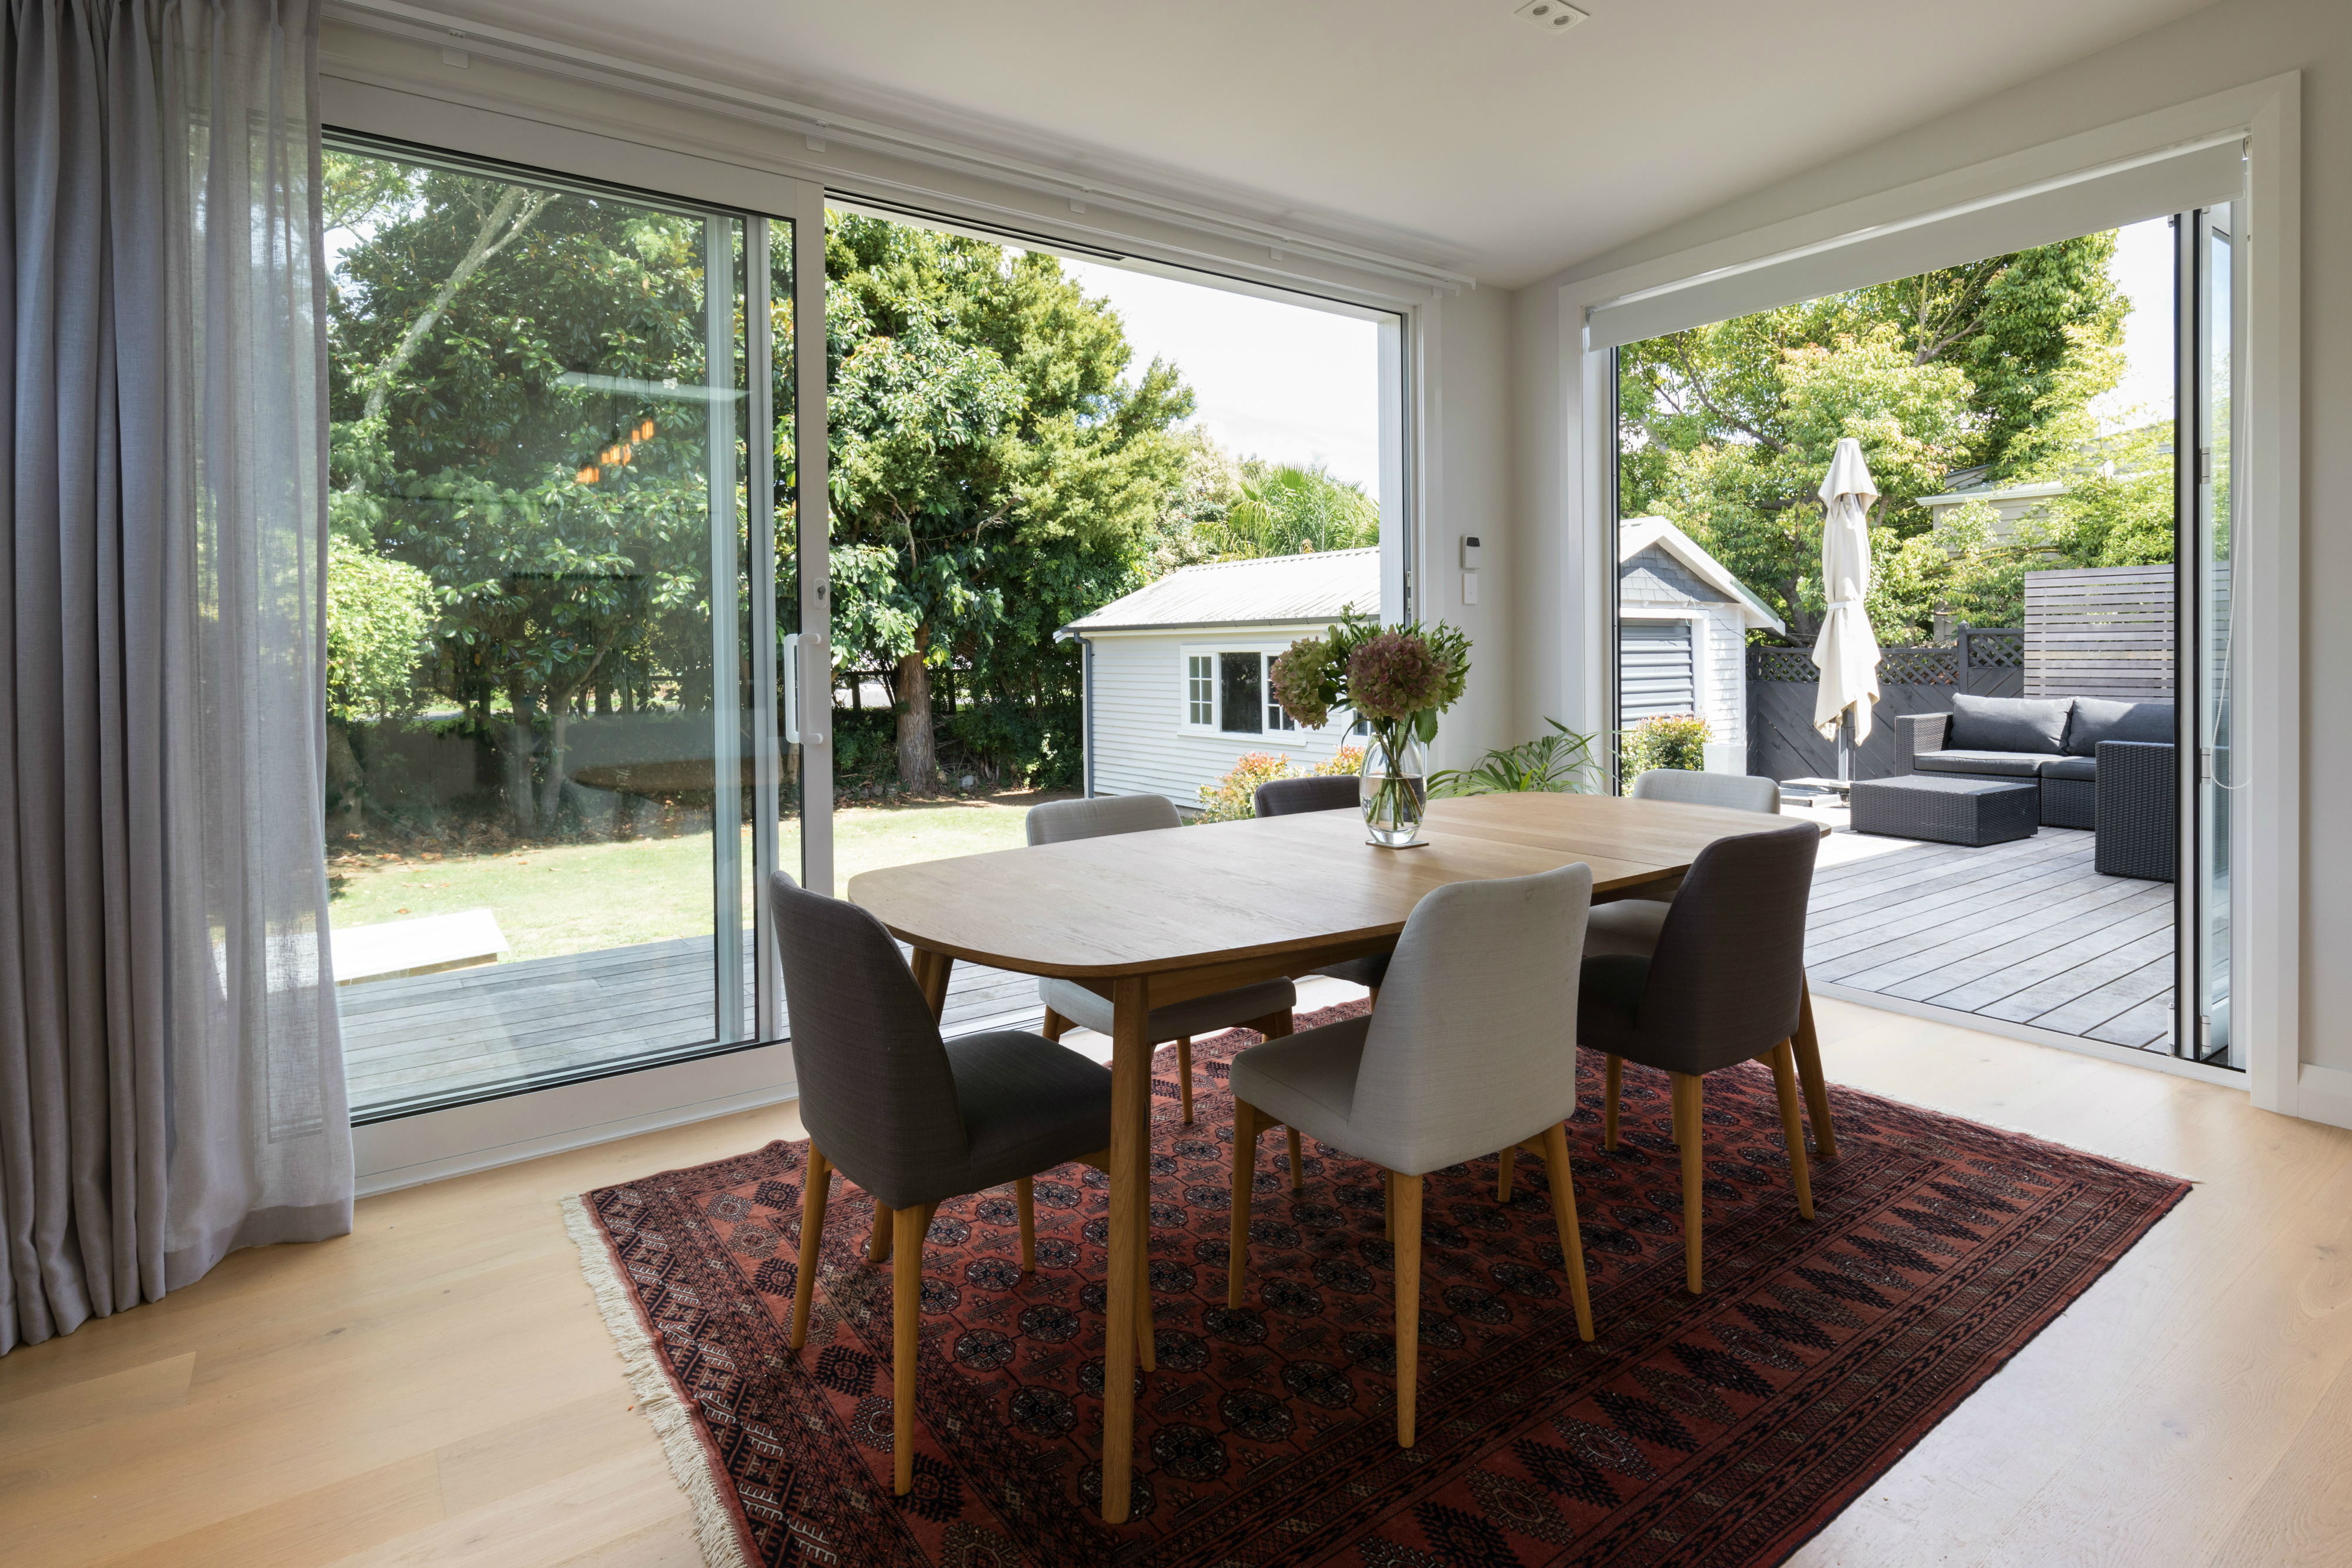 bungalow dining room extension